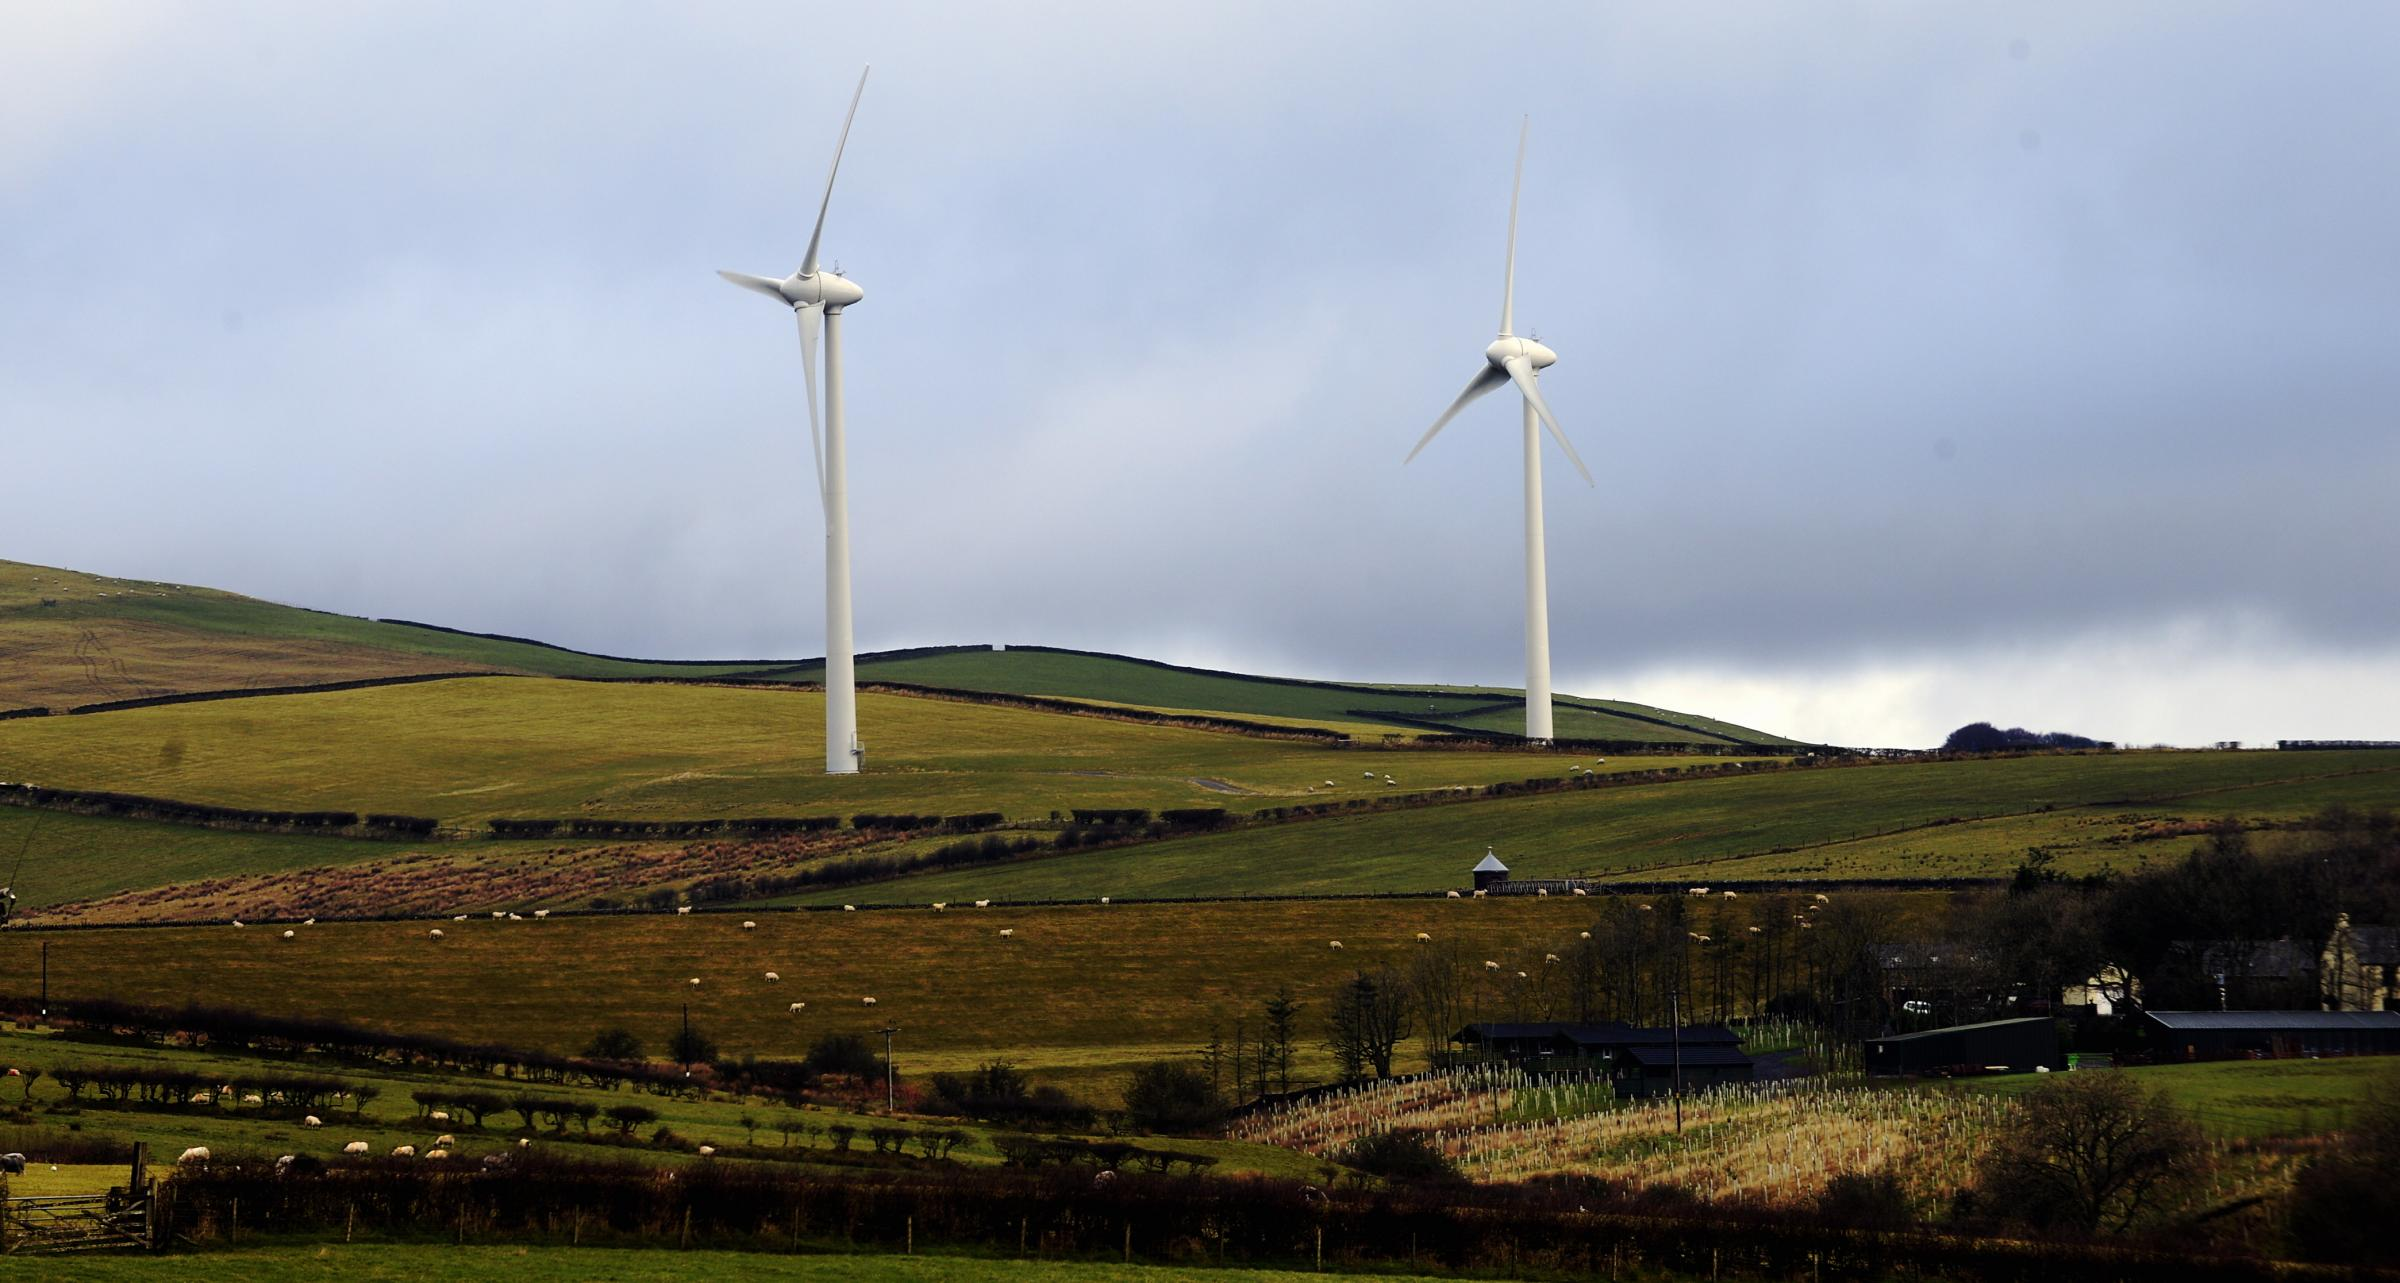 Part of the Kirkby Moor wind farm (Picture by JON GRANGER)